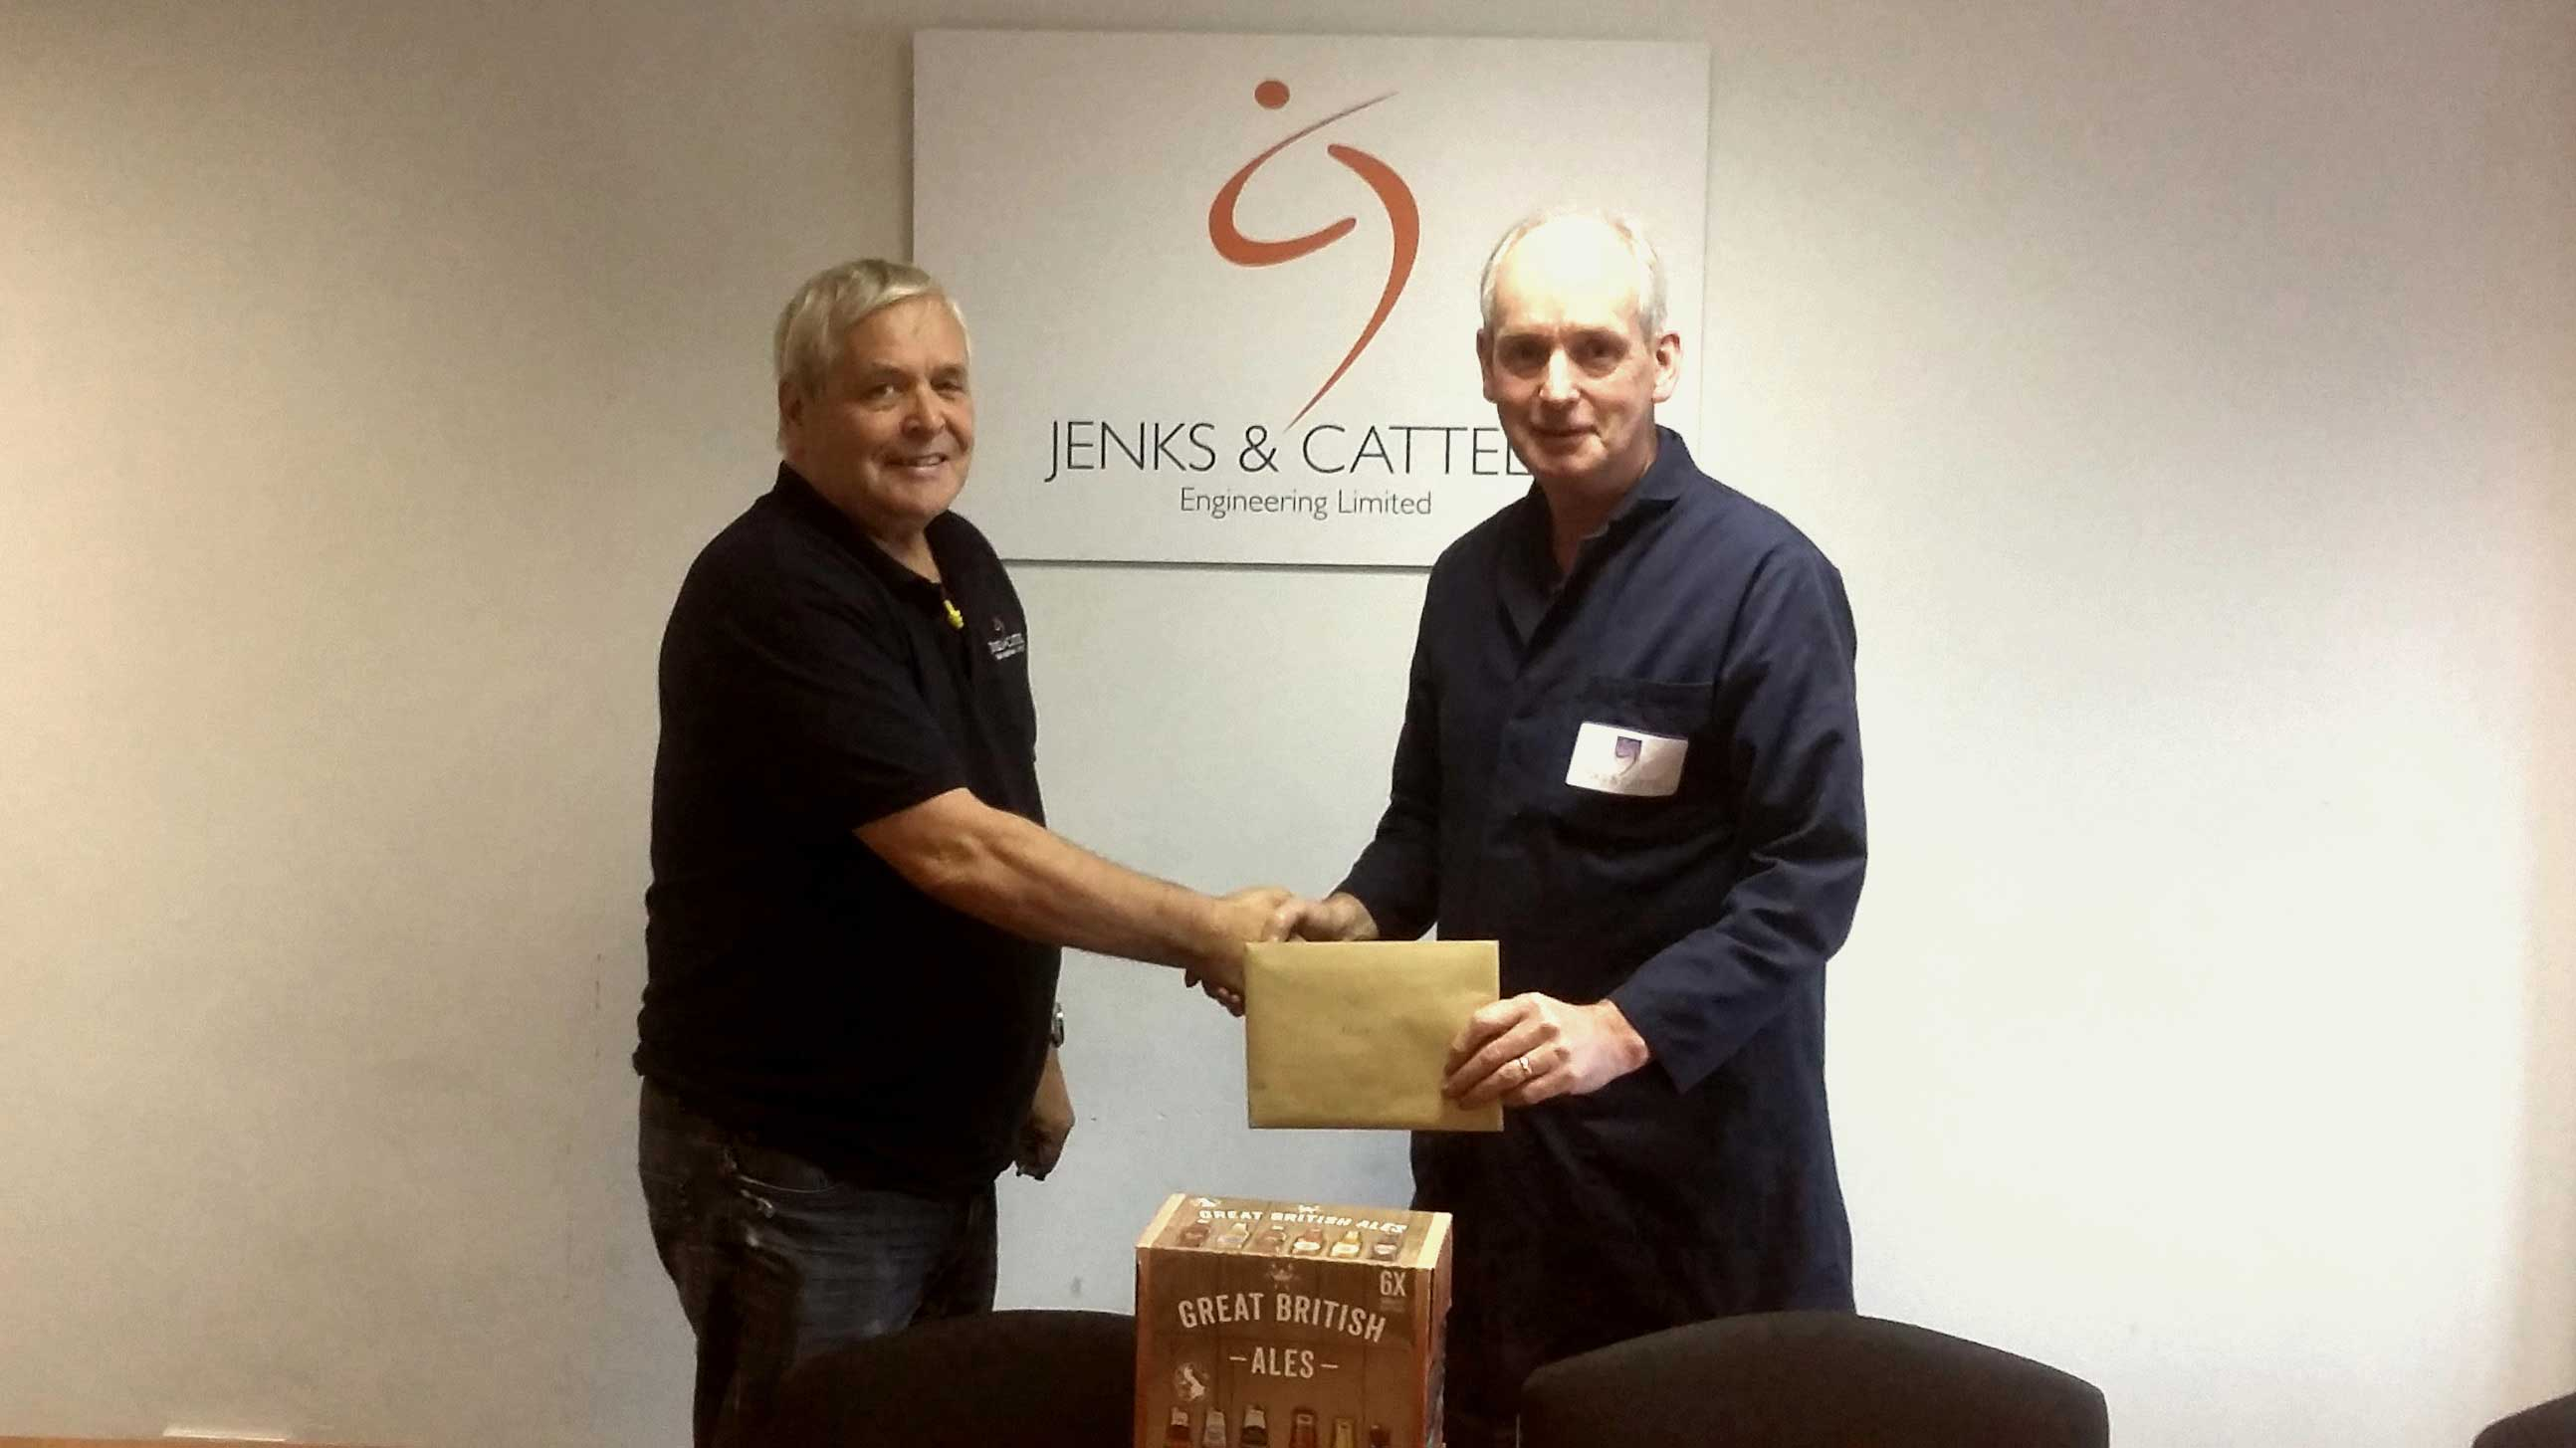 Jenks & Cattell Mick Celebrates 49 Years at Jenks & Cattell